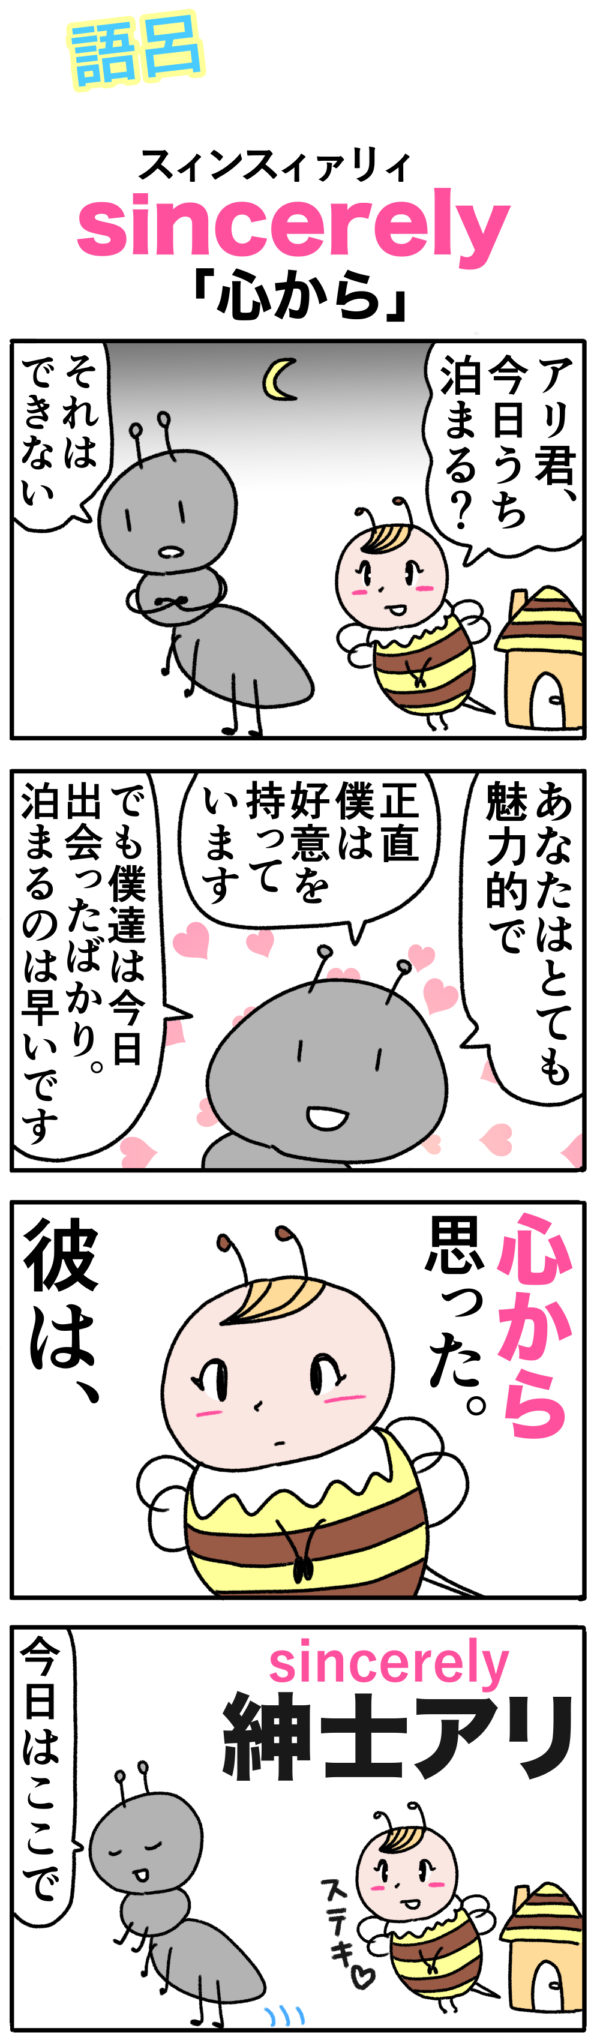 sincerely語呂合わせ